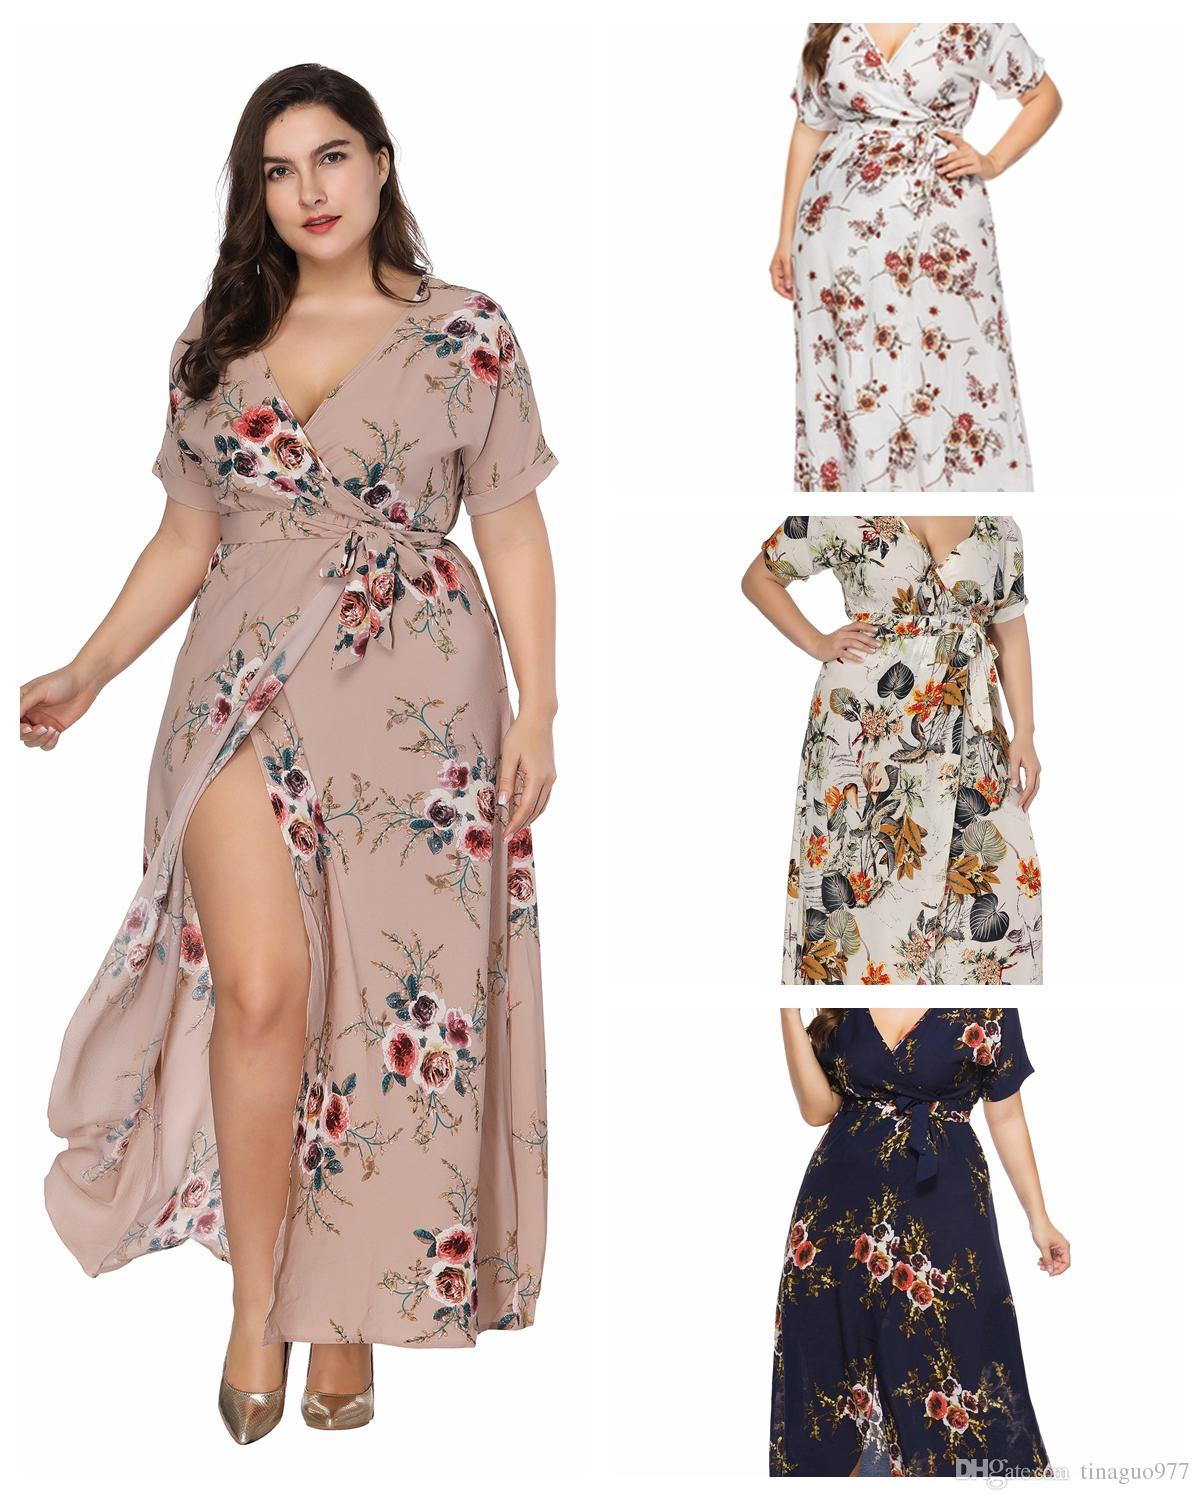 c062235fbdb 2019 Women S Clothing Plus Size Floral Print Maxi Dresses V Neck Short  Sleeve Big Size Bohemian Dress From Tinaguo977